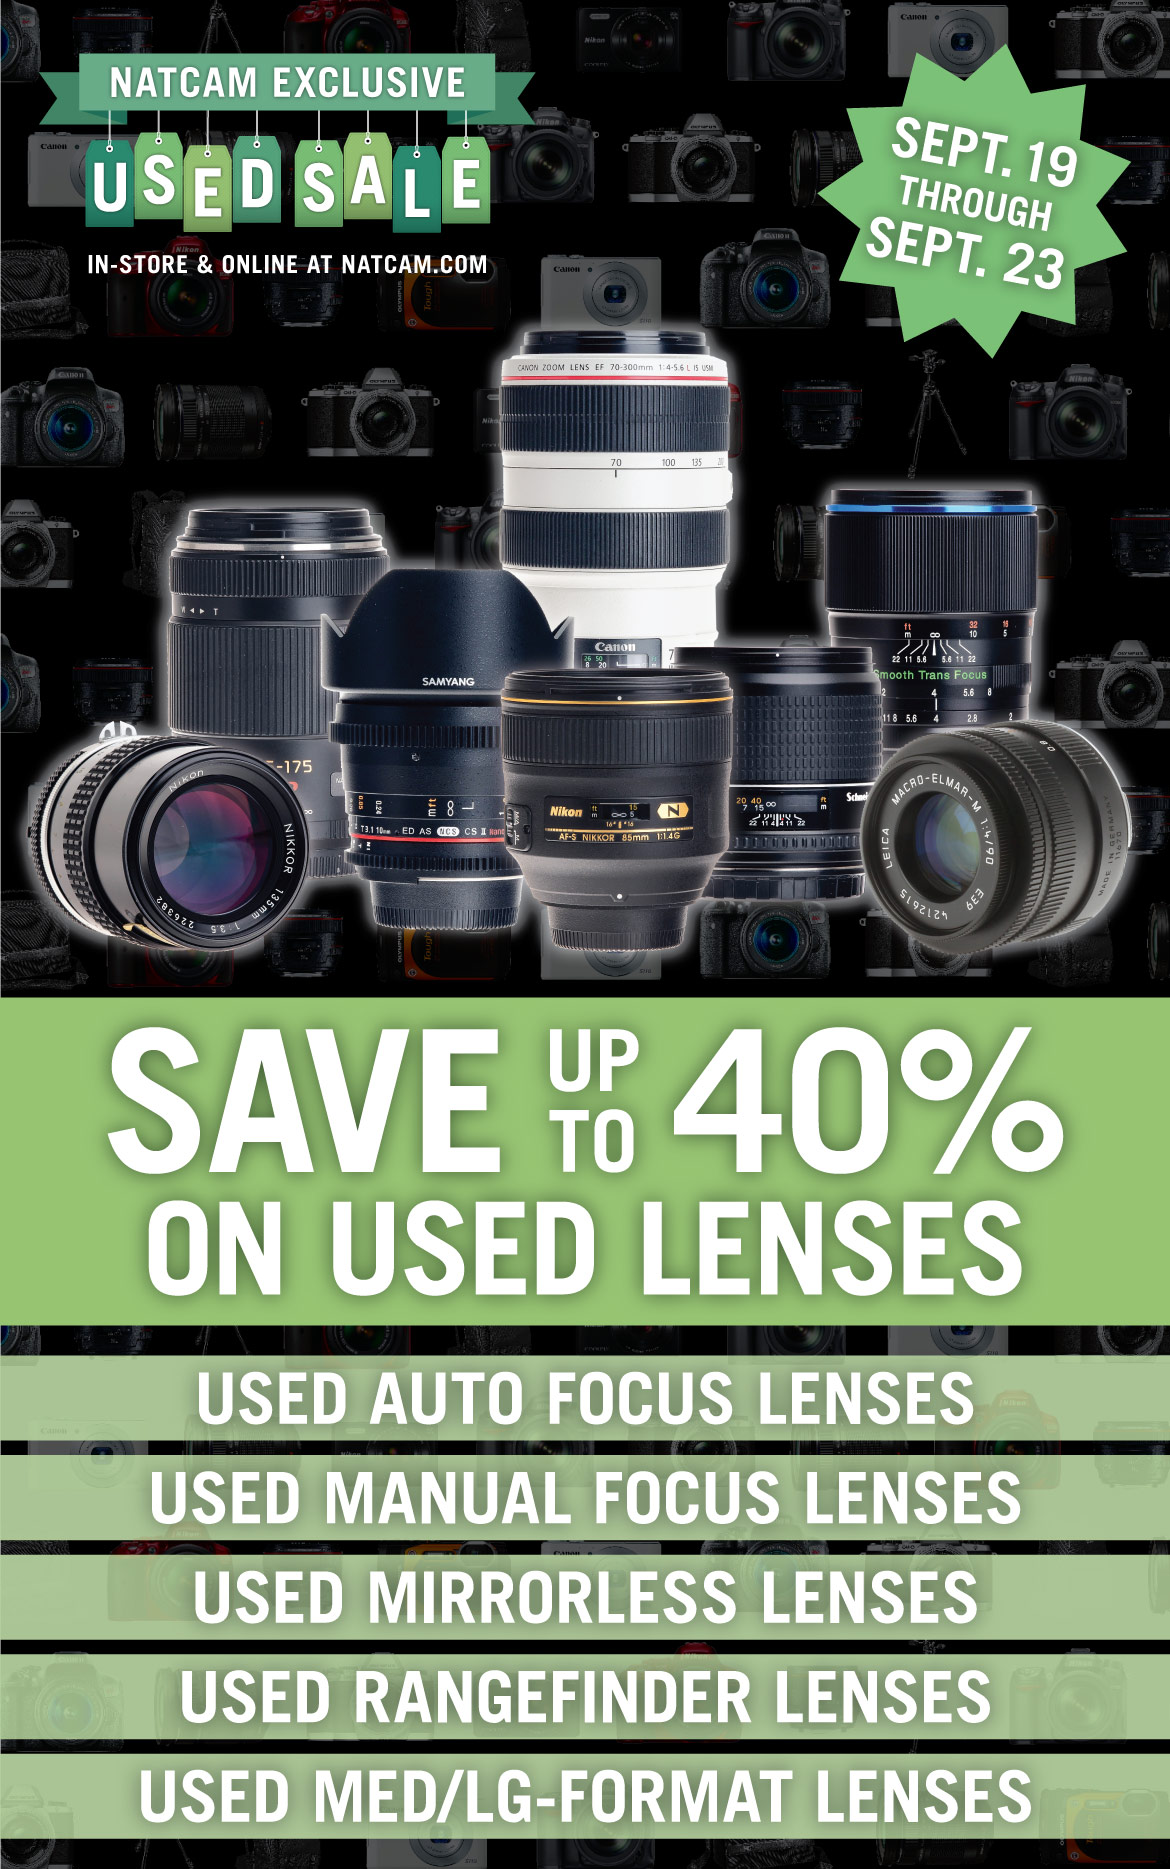 Save up to 40% on all Used Lenses, In-Store & Online, September 19-23